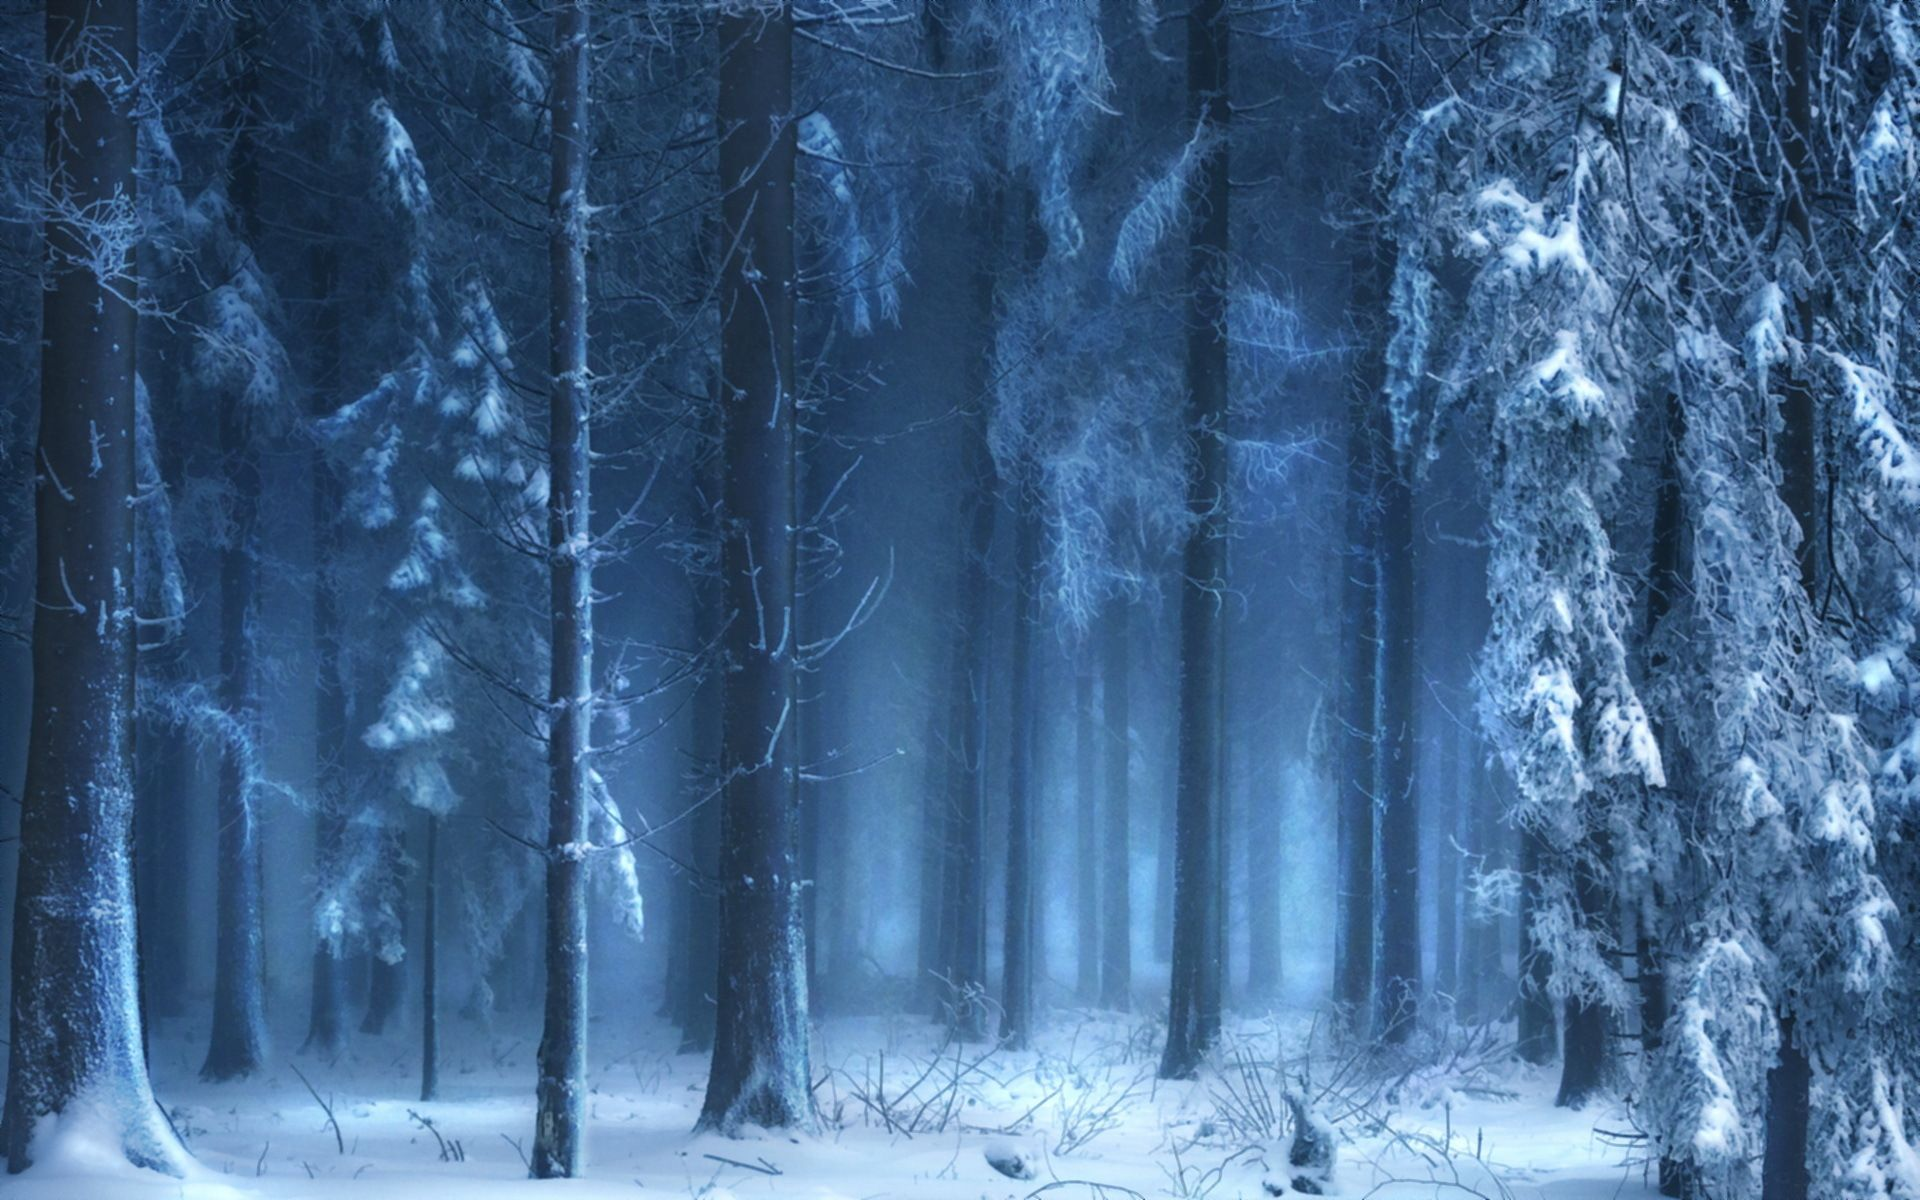 Landscapes trees forest woods winter snow wallpaper | 1920x1200 ... for Fantasy Winter Forest Wallpaper  555kxo